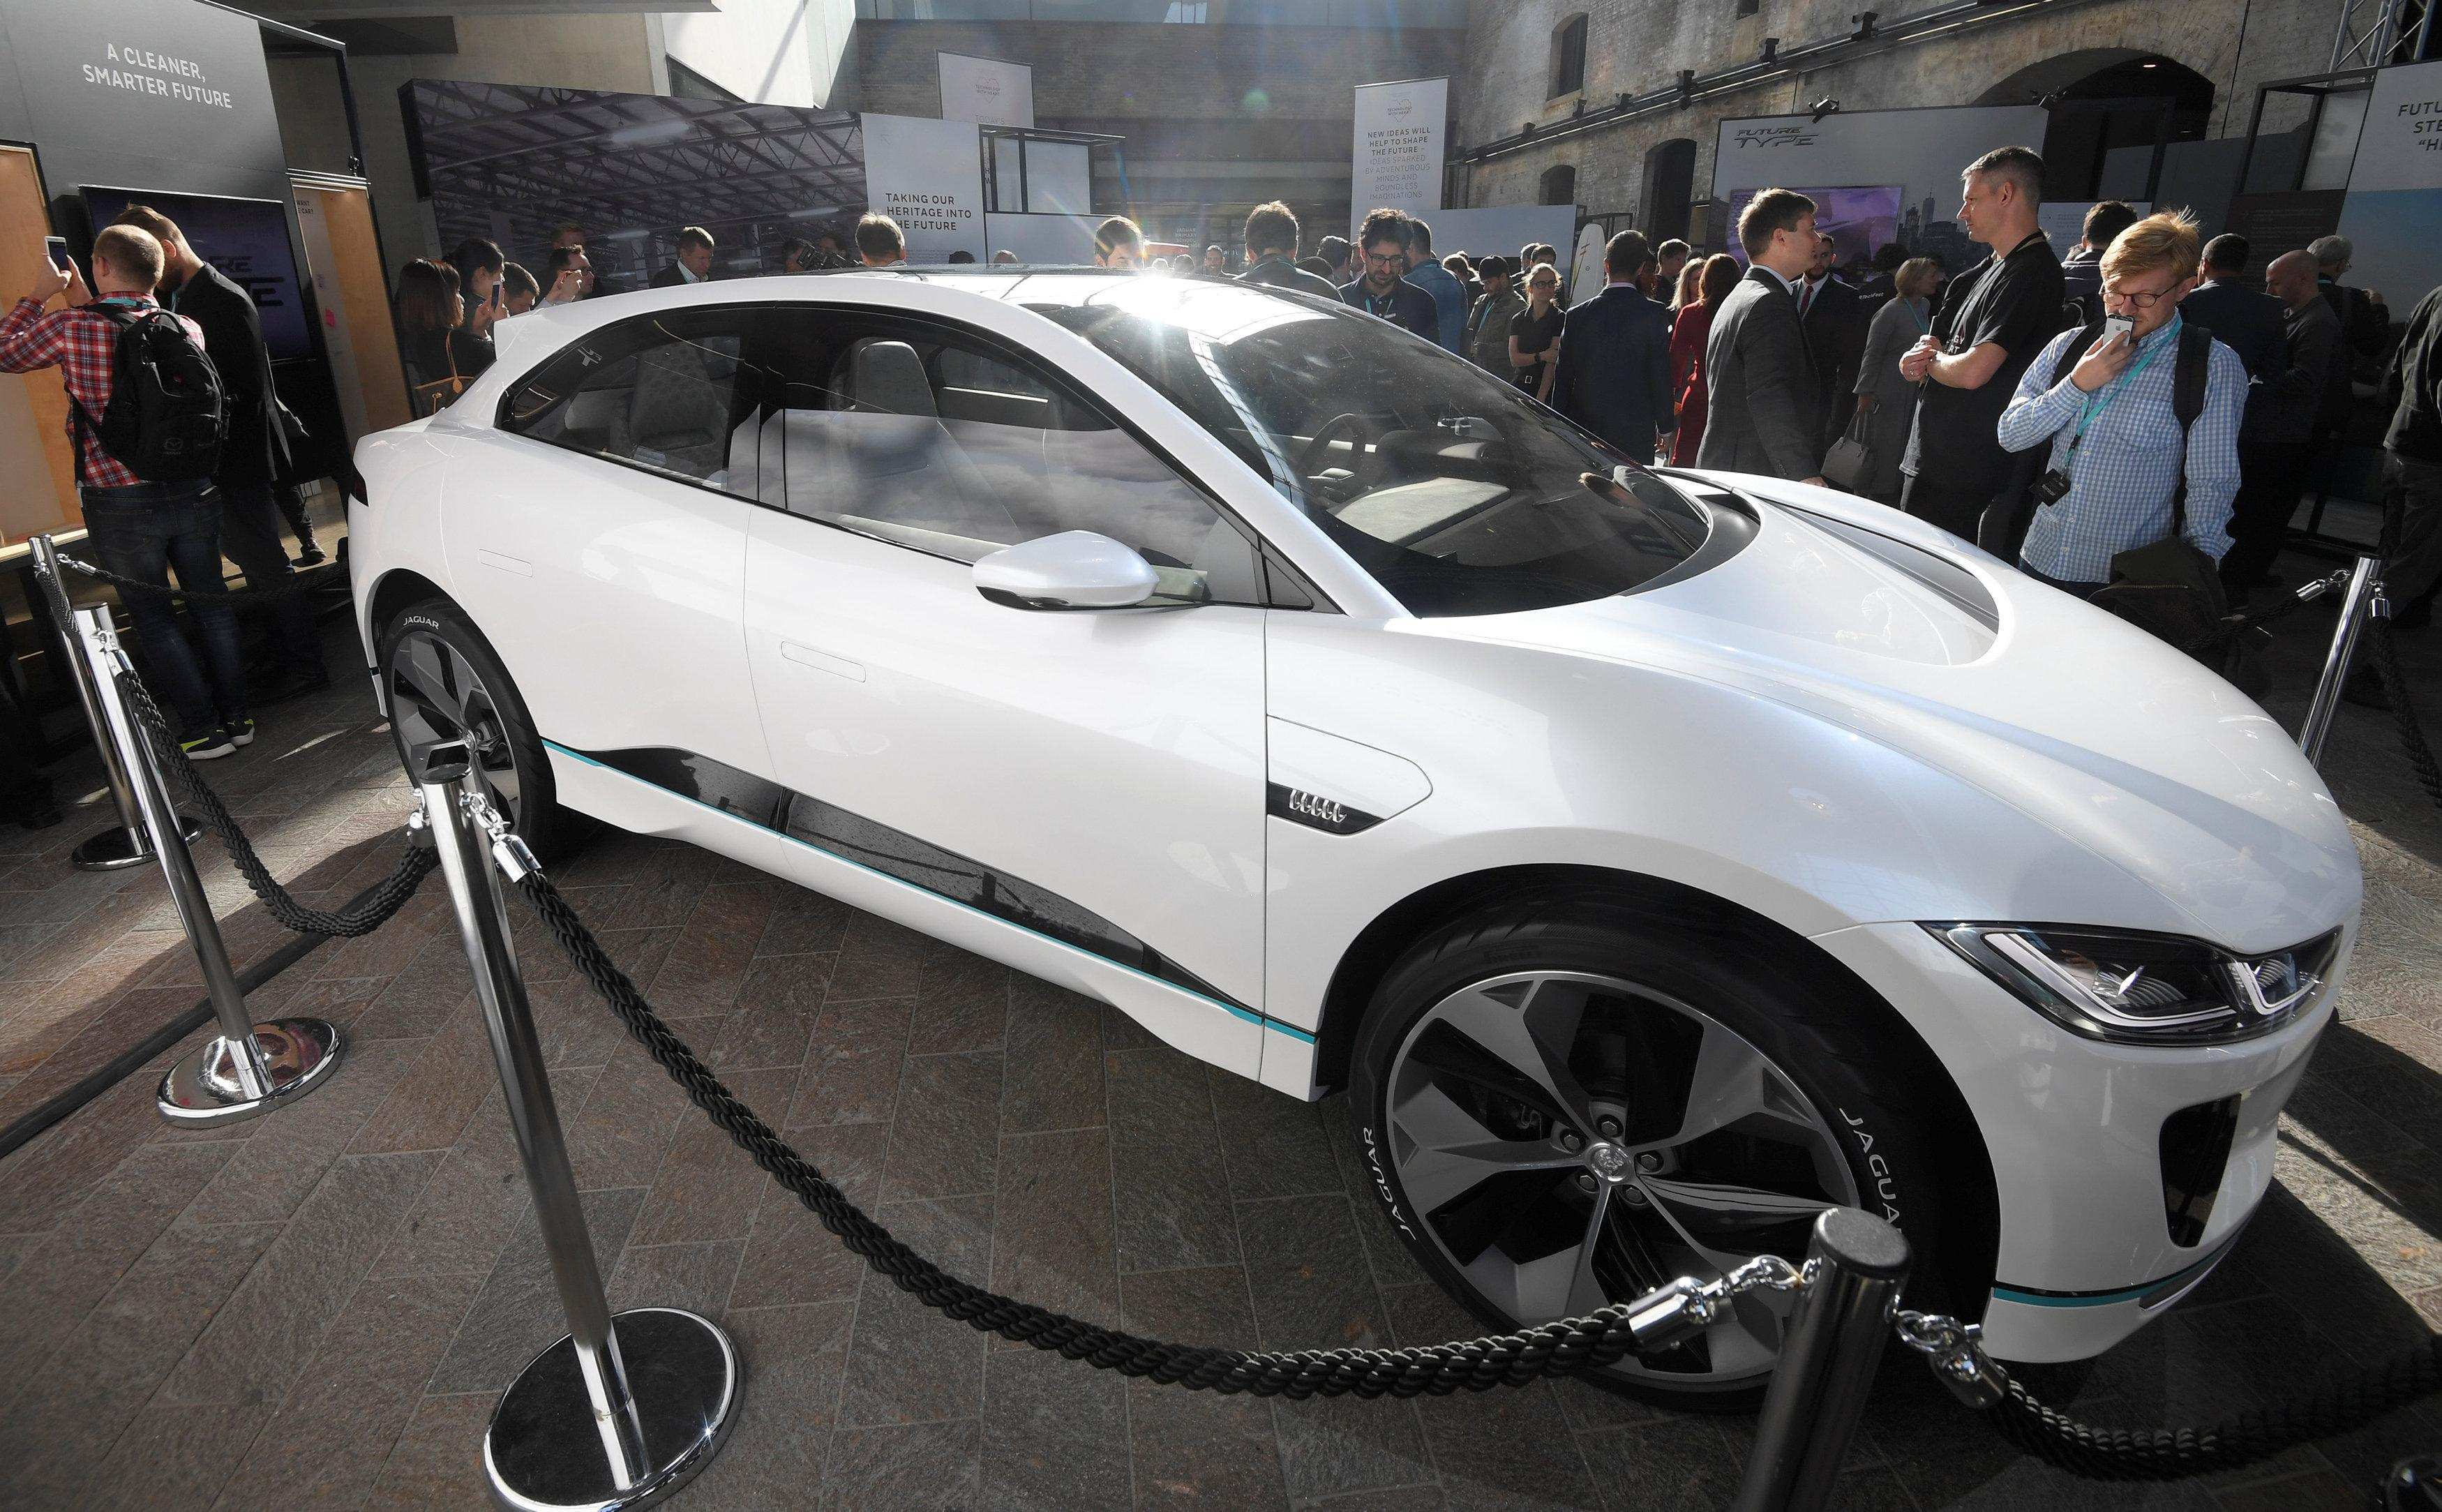 96 Gallery of Jaguar Land Rover Electric 2020 Review with Jaguar Land Rover Electric 2020